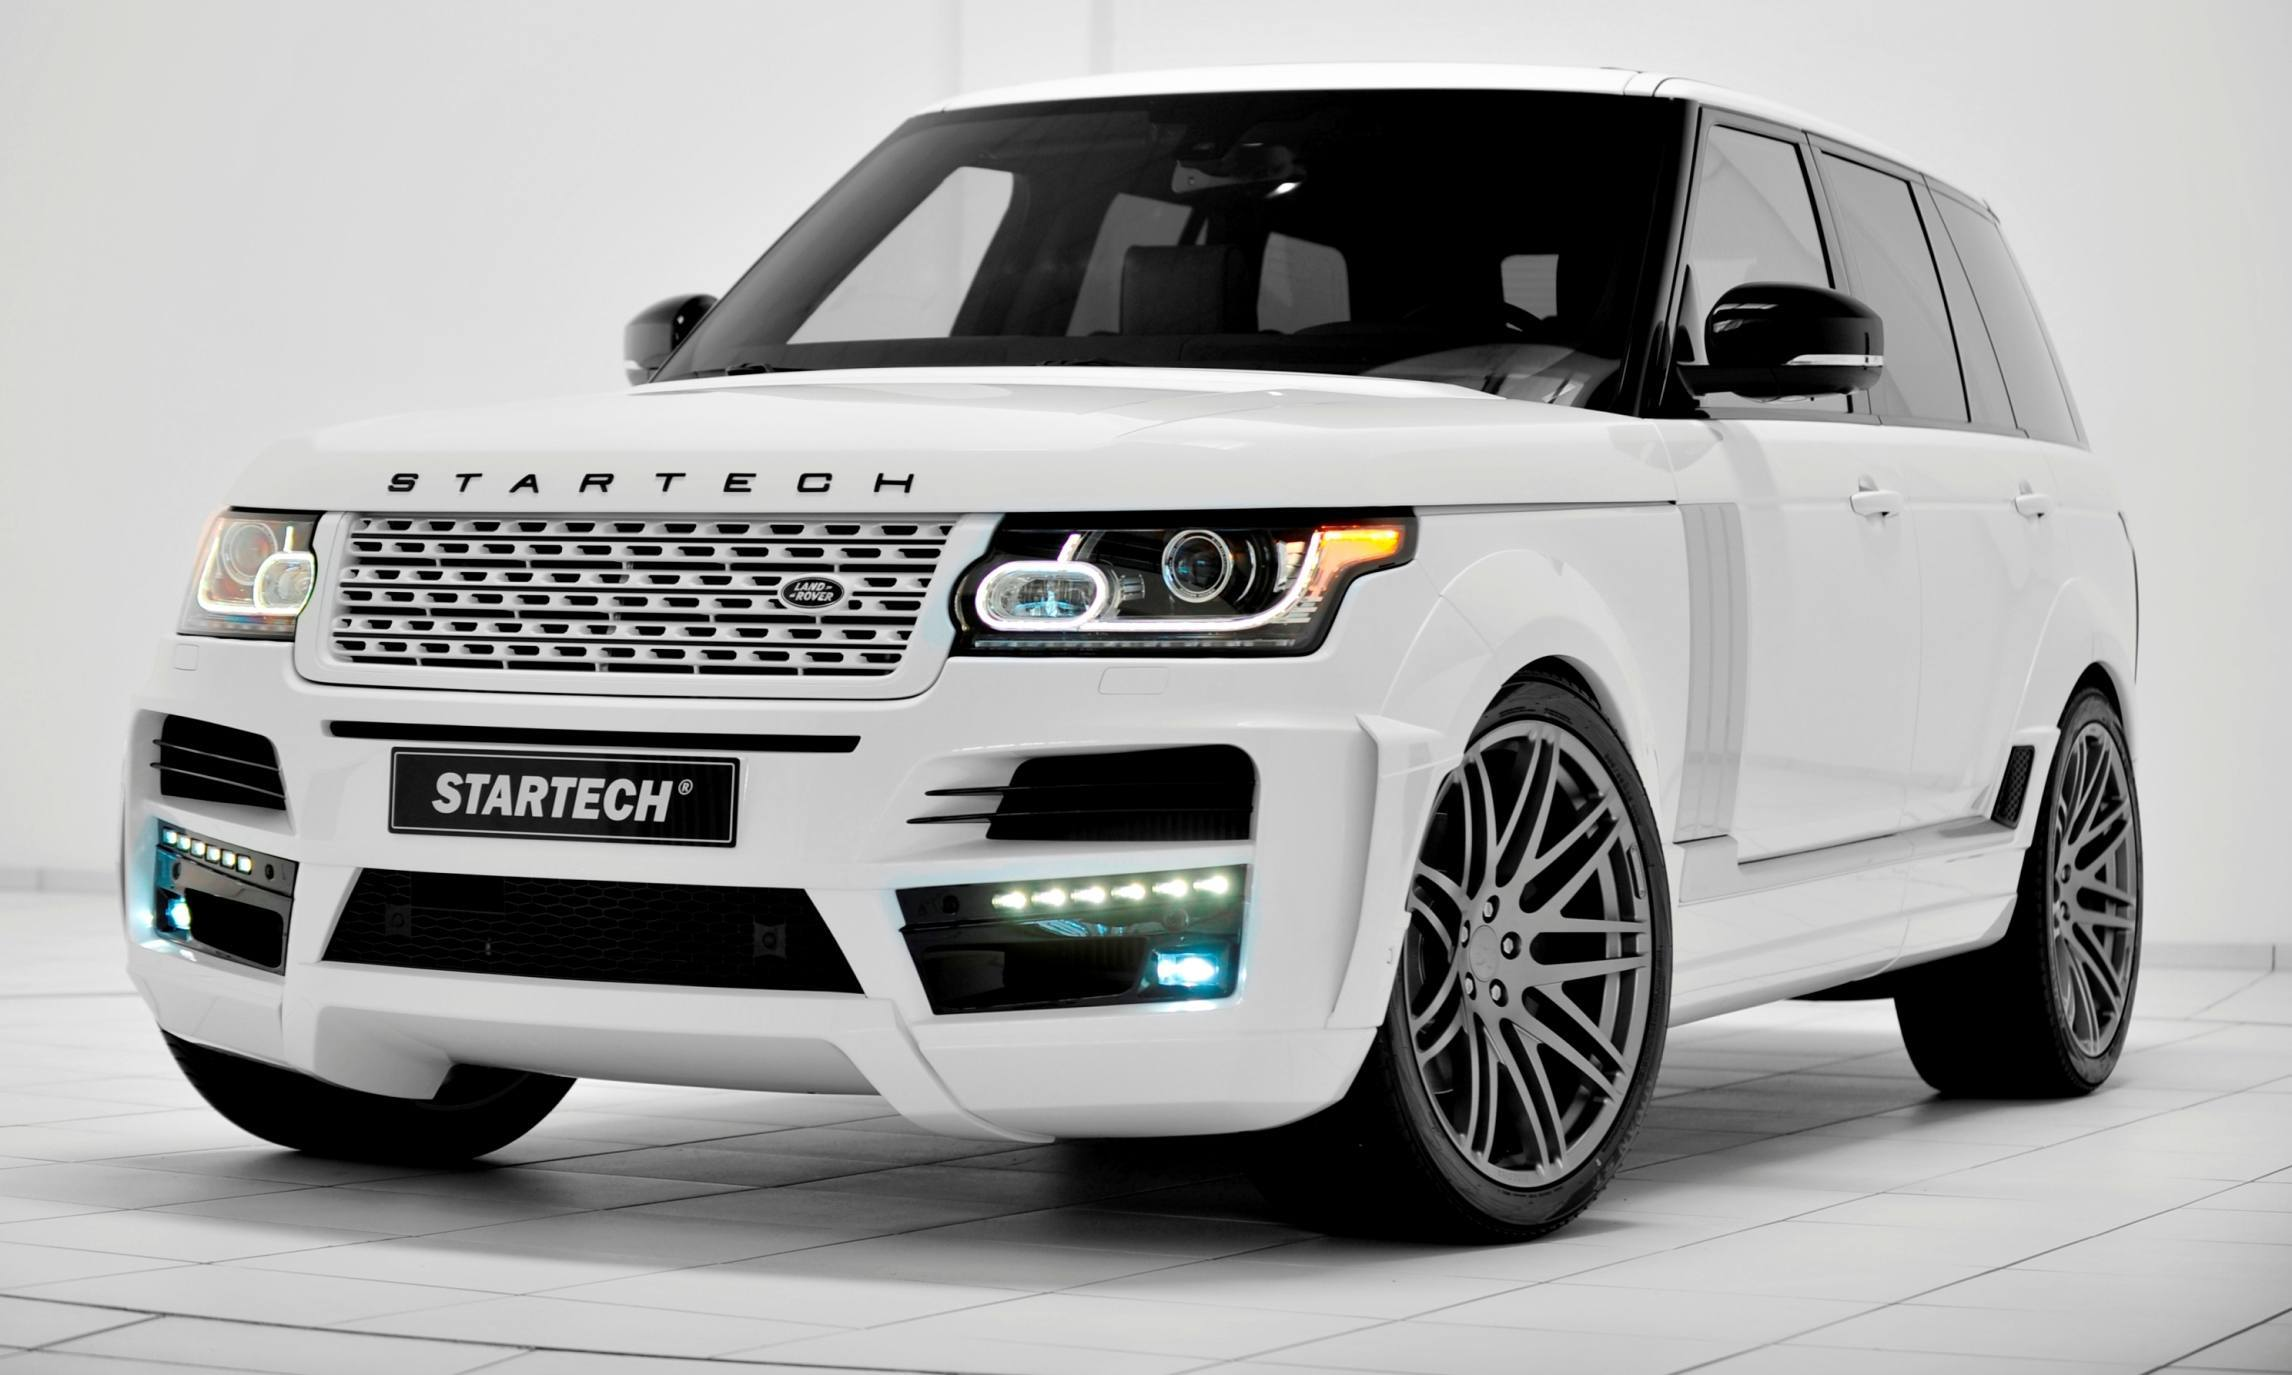 2013 2015 Range Rover By StarTech Brings Best of BRABUS Tech to Lux